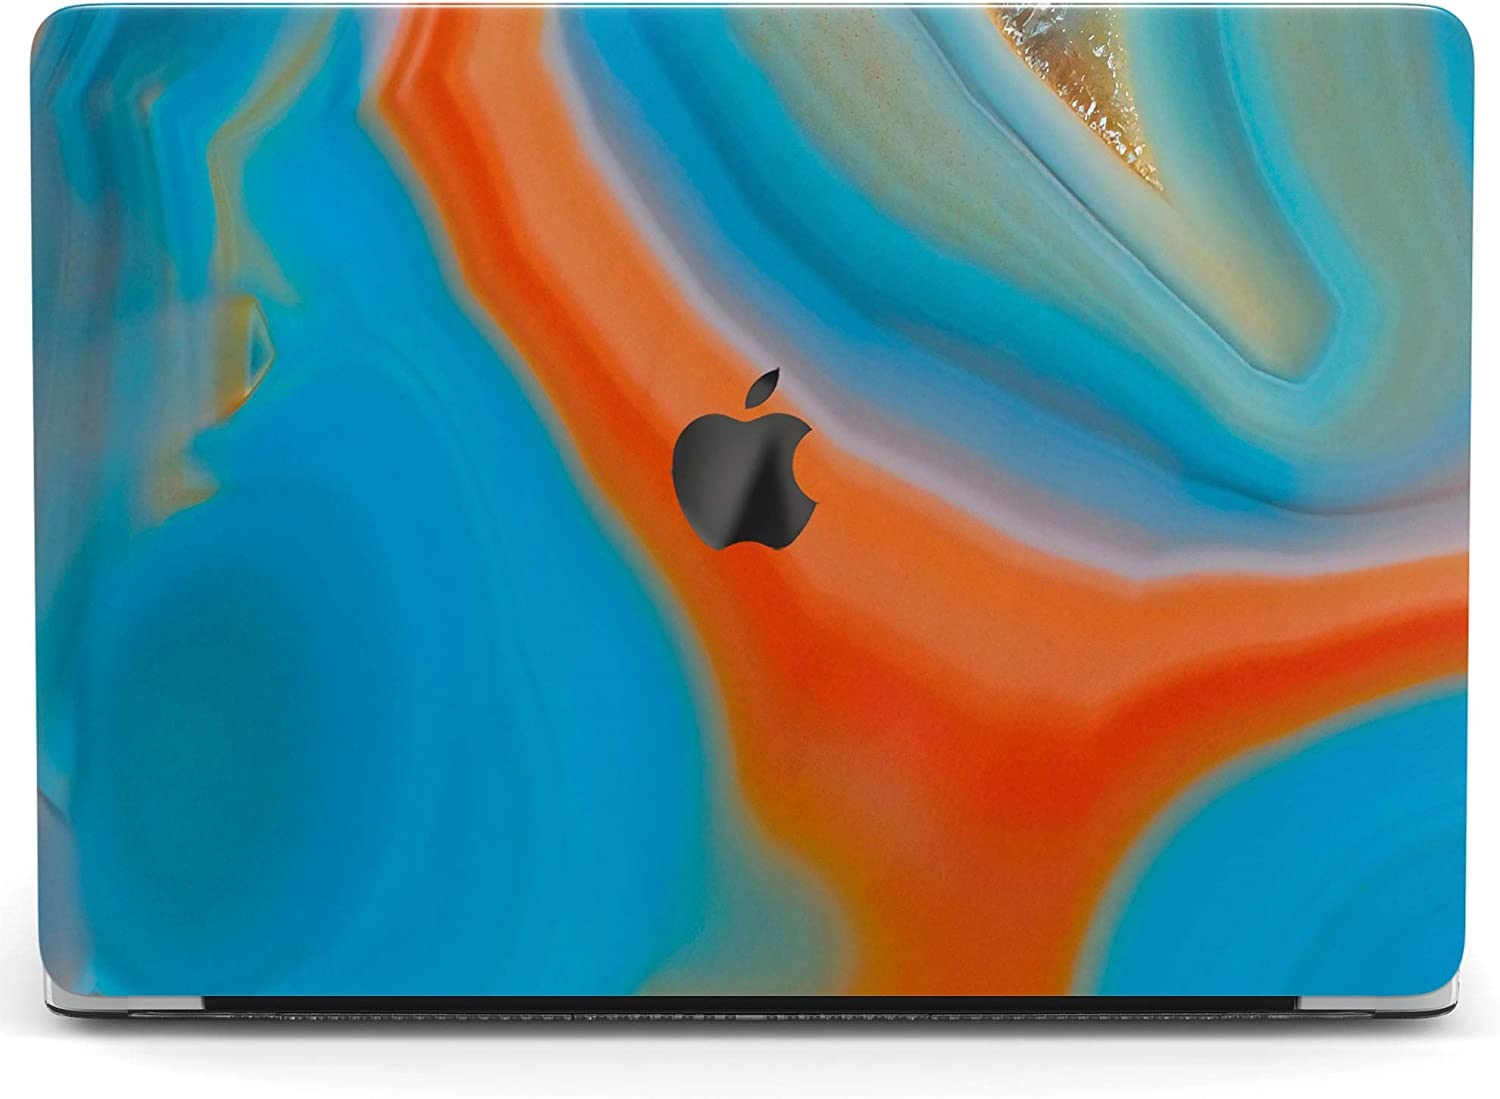 Wonder Wild Case For MacBook Air 13 inch Pro 15 2019 2018 Retina 12 11 Apple Hard Mac Protective Cover Touch Bar 2017 2016 2020 Plastic Laptop Print Abstract Agate Drawing Watercolor Minimal Oil Stone